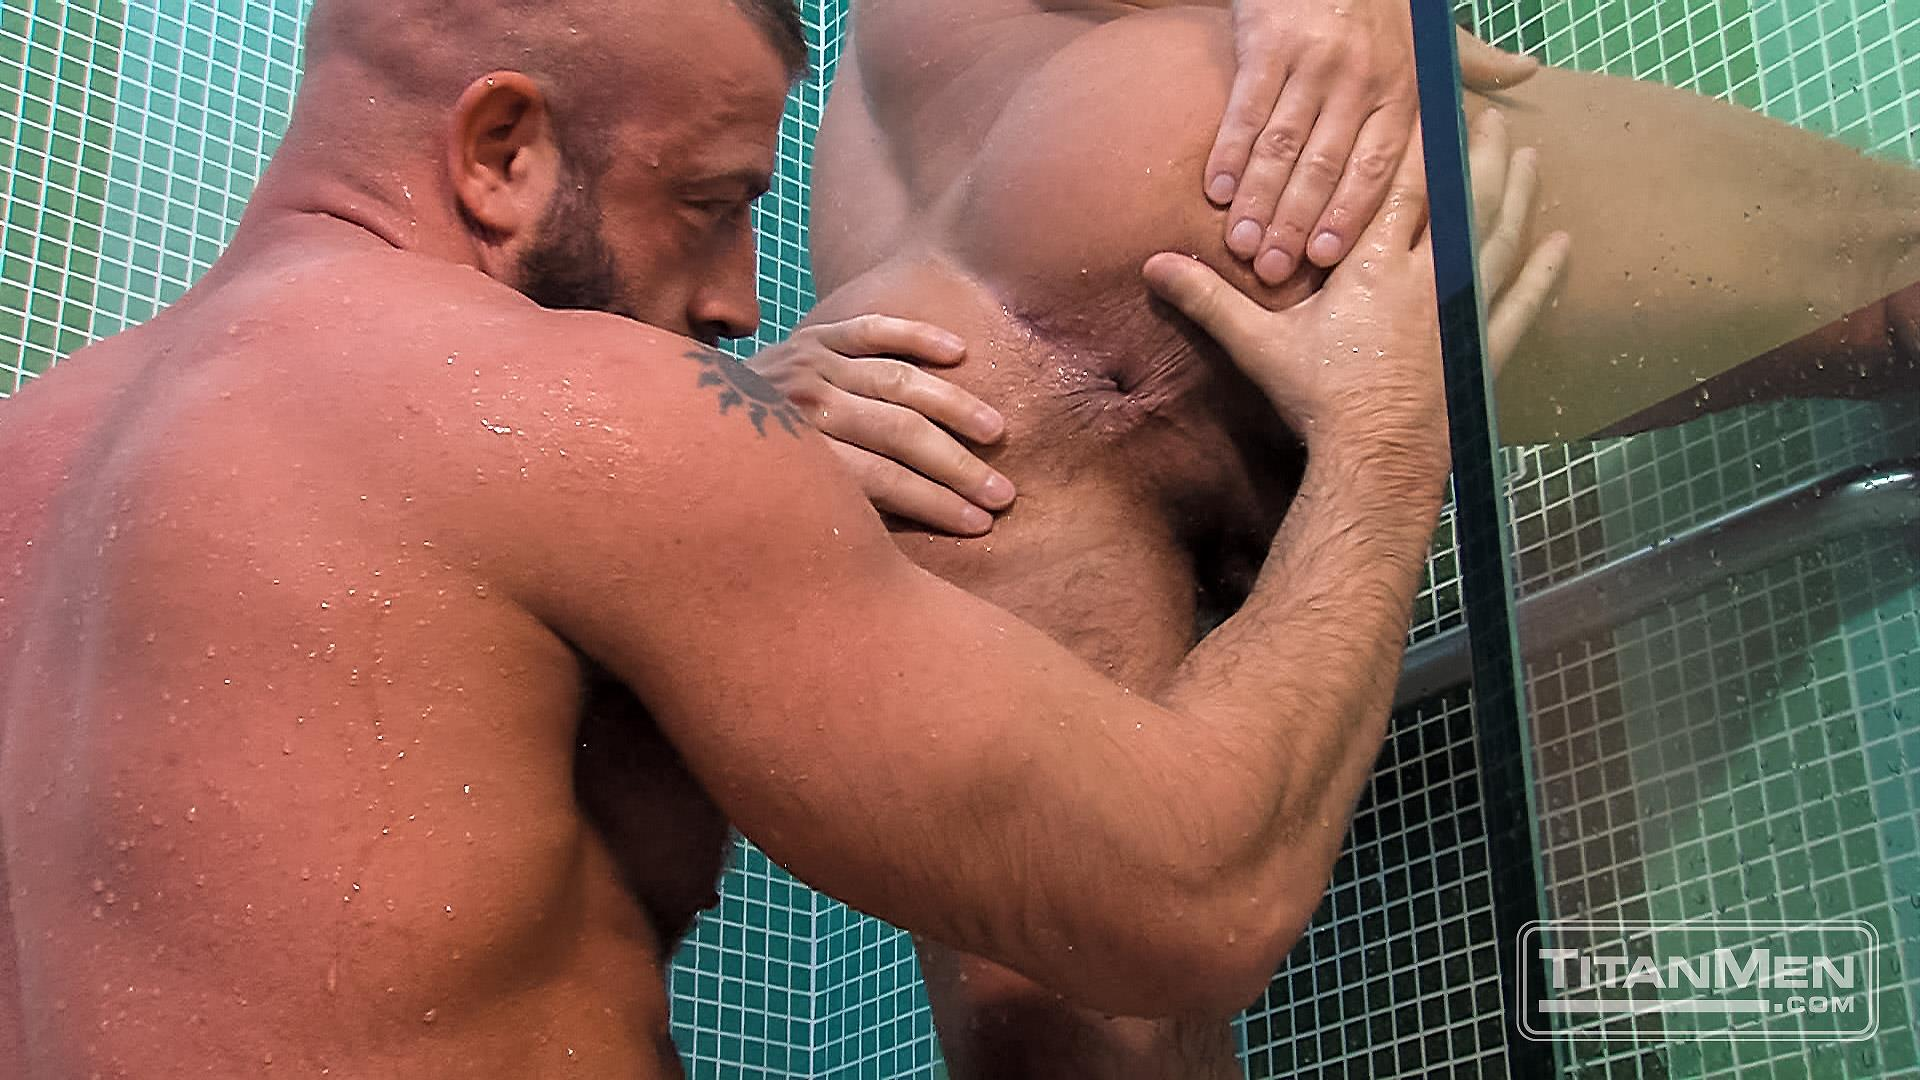 Titanmen Titan Hunter Marx and Dirk Caber Hairy Muscle Daddy Fuck Amateur Gay Porn 24